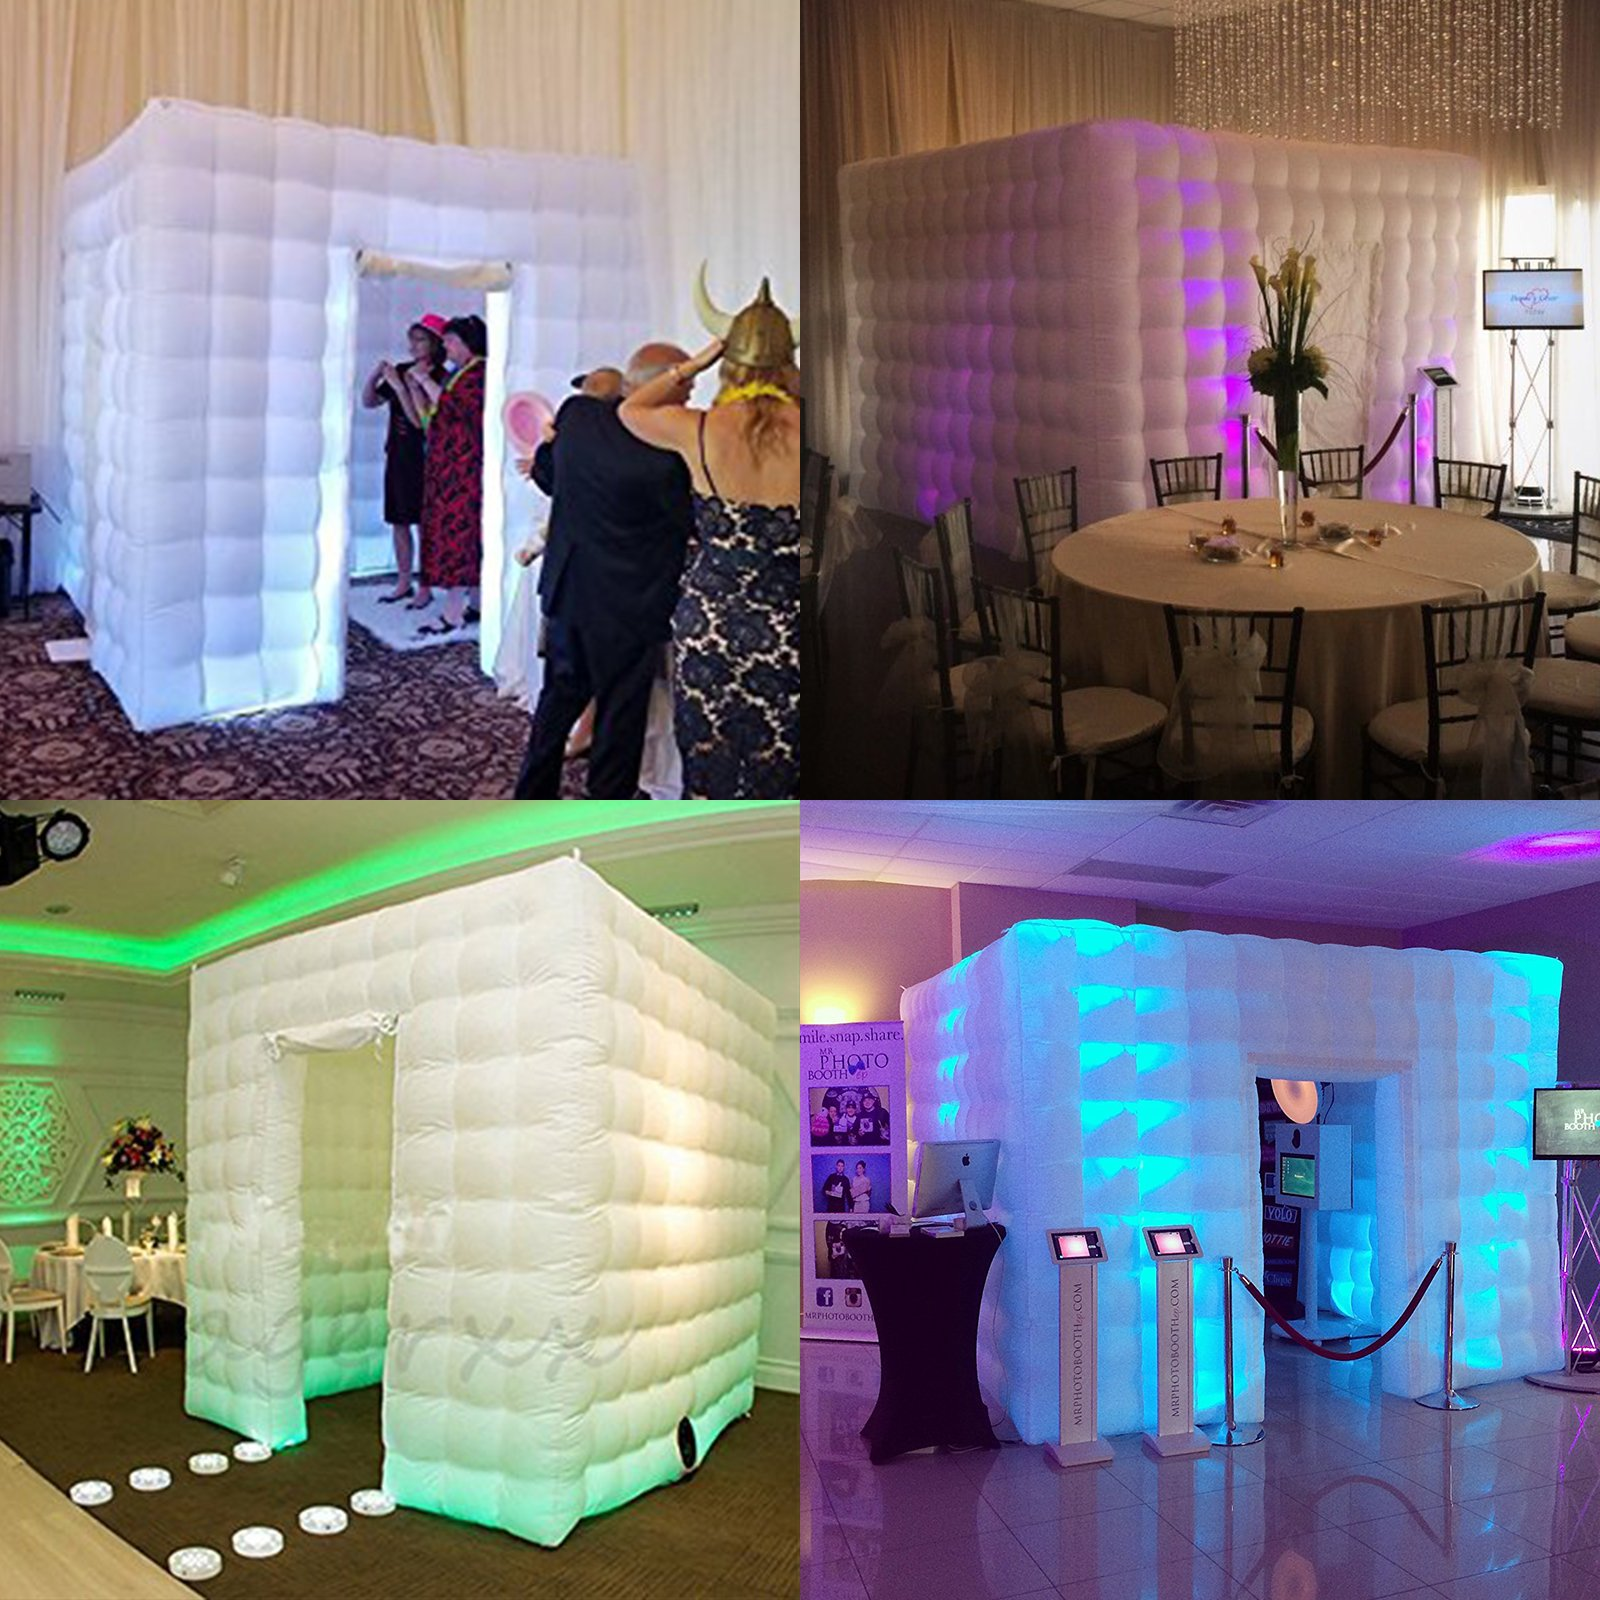 Happybuy Inflatable Portable Photo Booth Enclosure with LED Changing Lights Inner Air Blower and Controller for Wedding Party Promotions Advertising Photo Booth Tent Cube (Two Door) by Happybuy (Image #5)